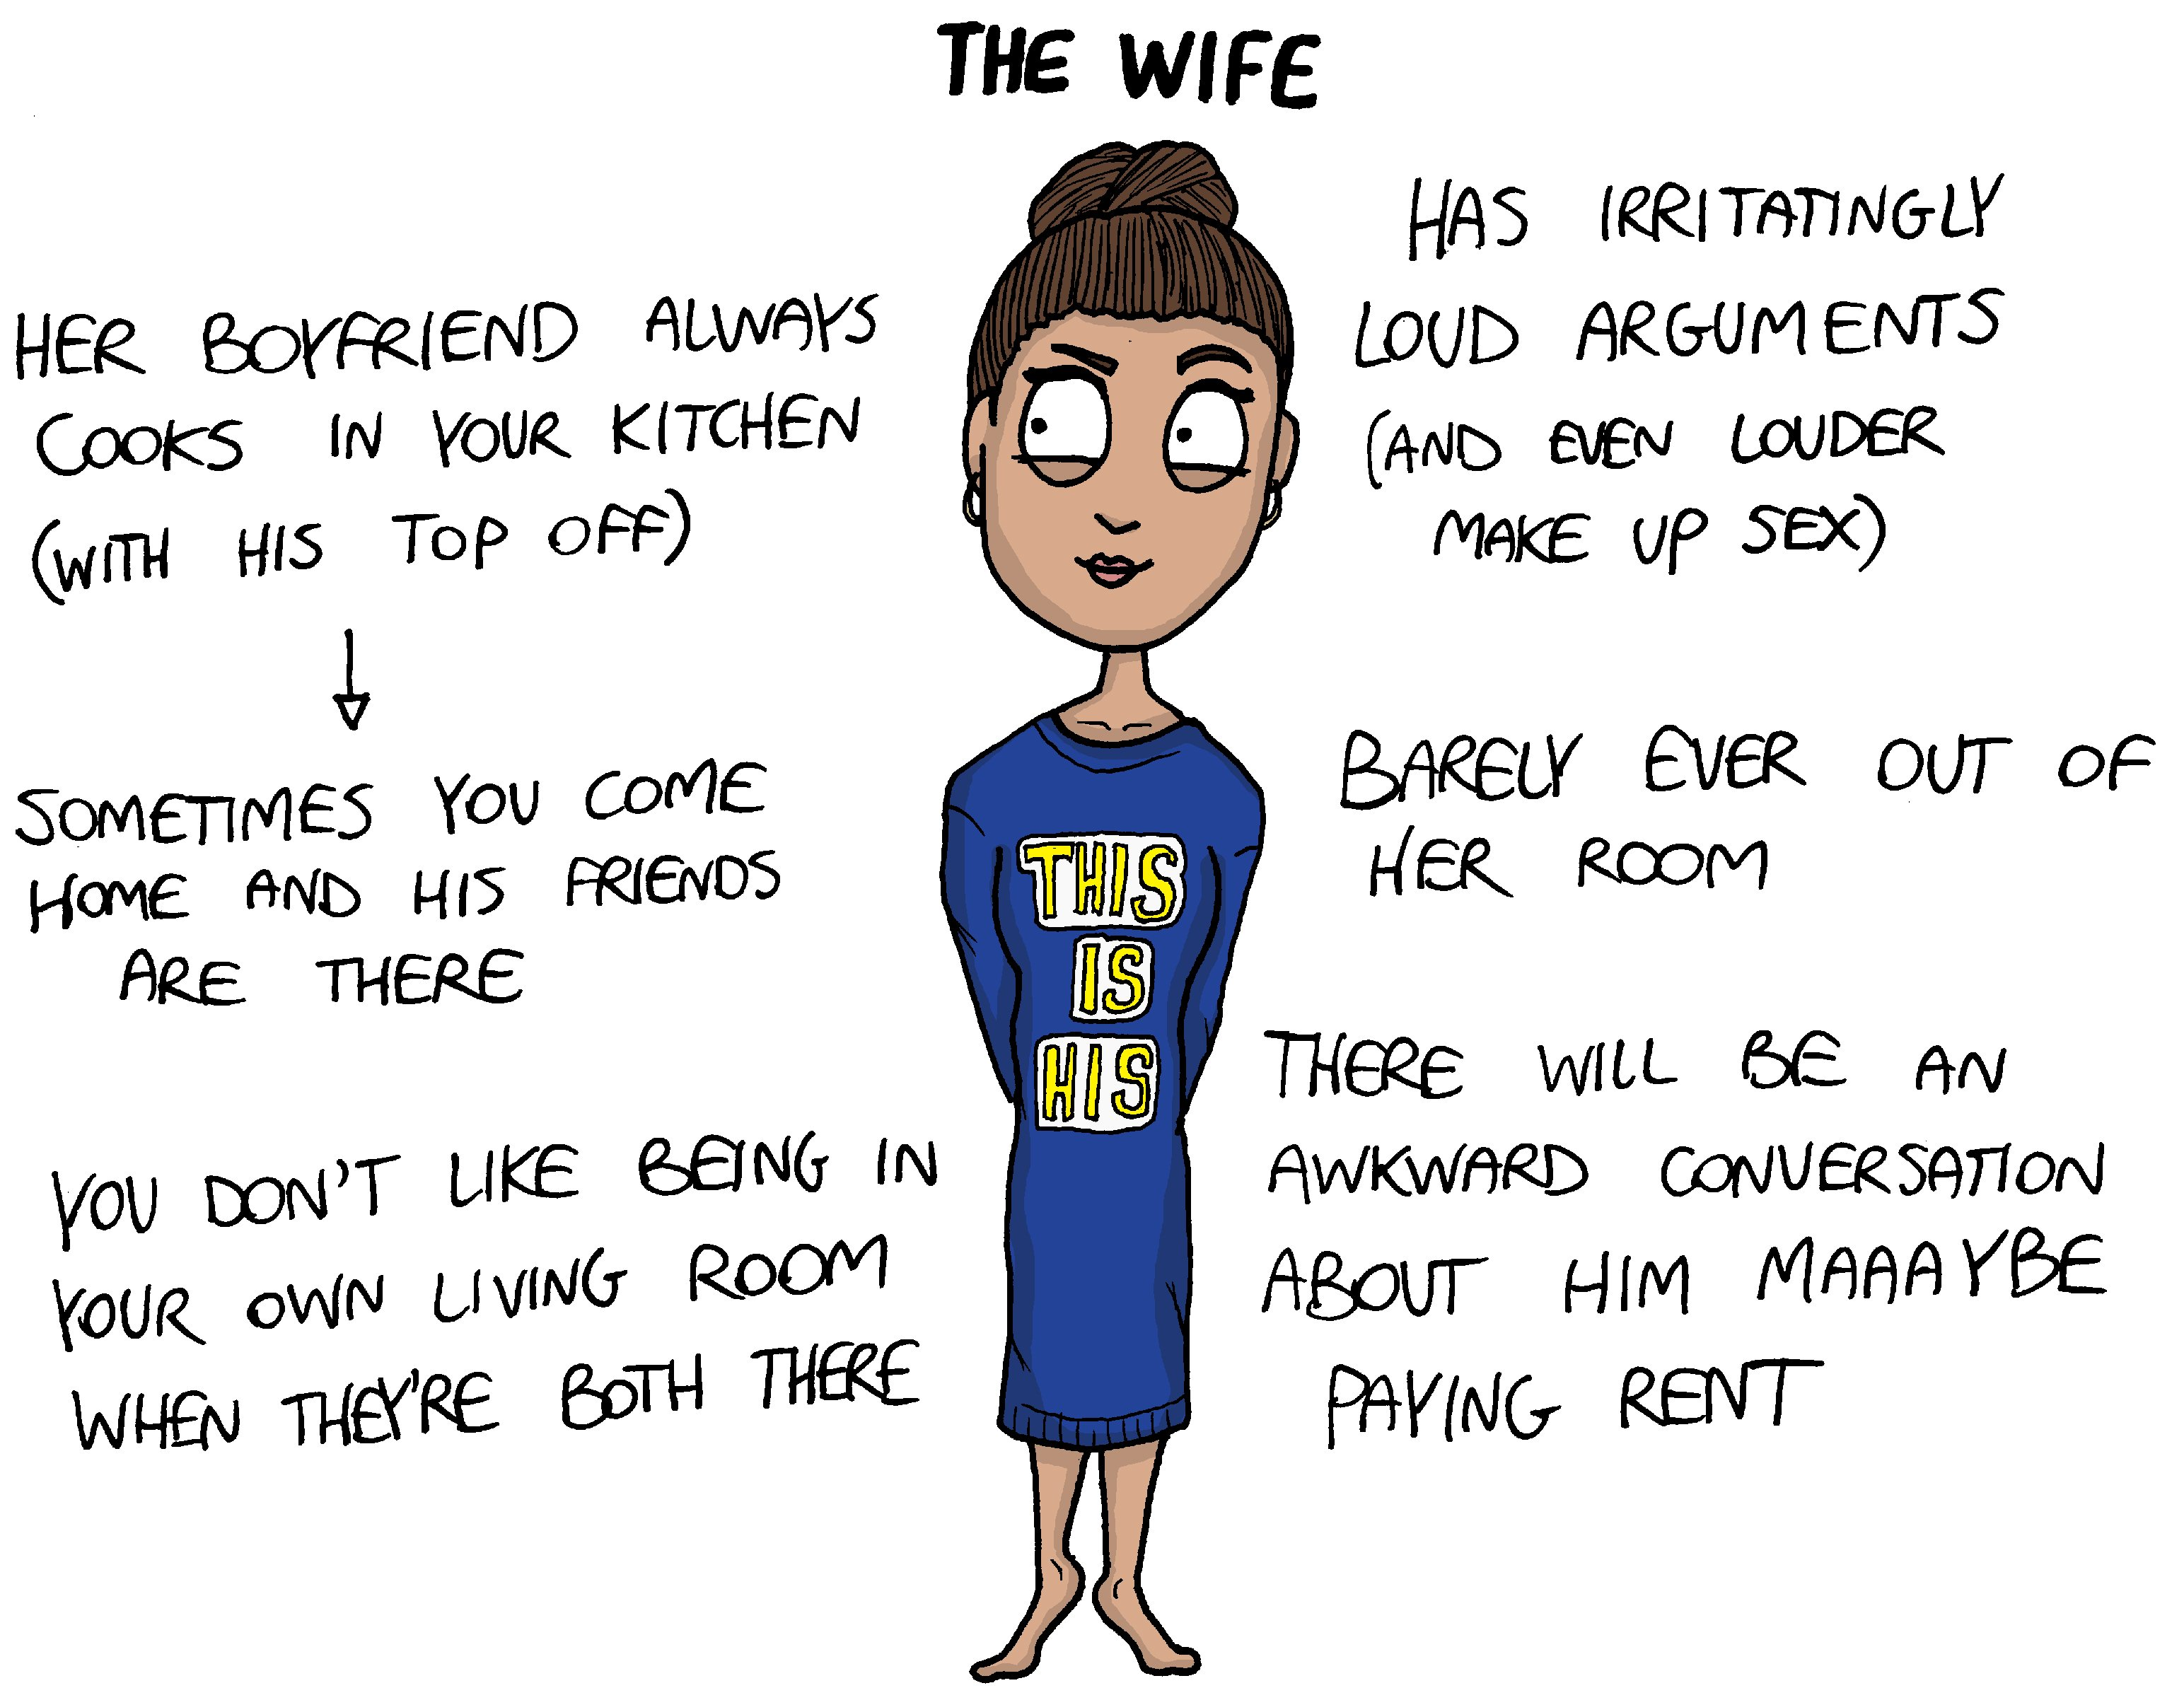 4wife